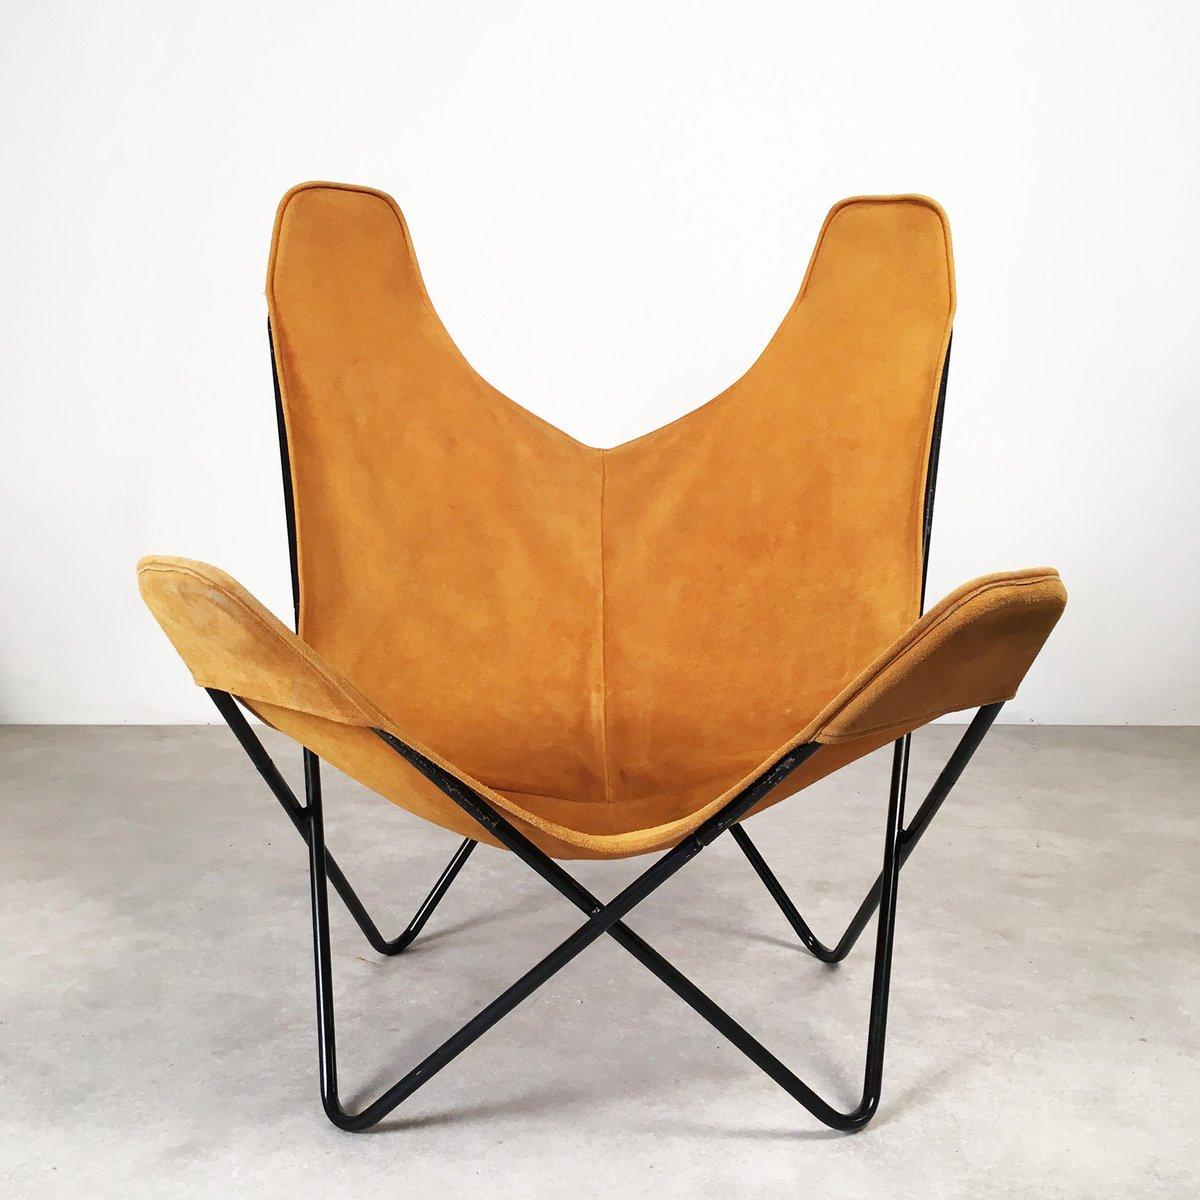 butterfly chair by jorge hardoy ferrari for knoll 1950s. Black Bedroom Furniture Sets. Home Design Ideas